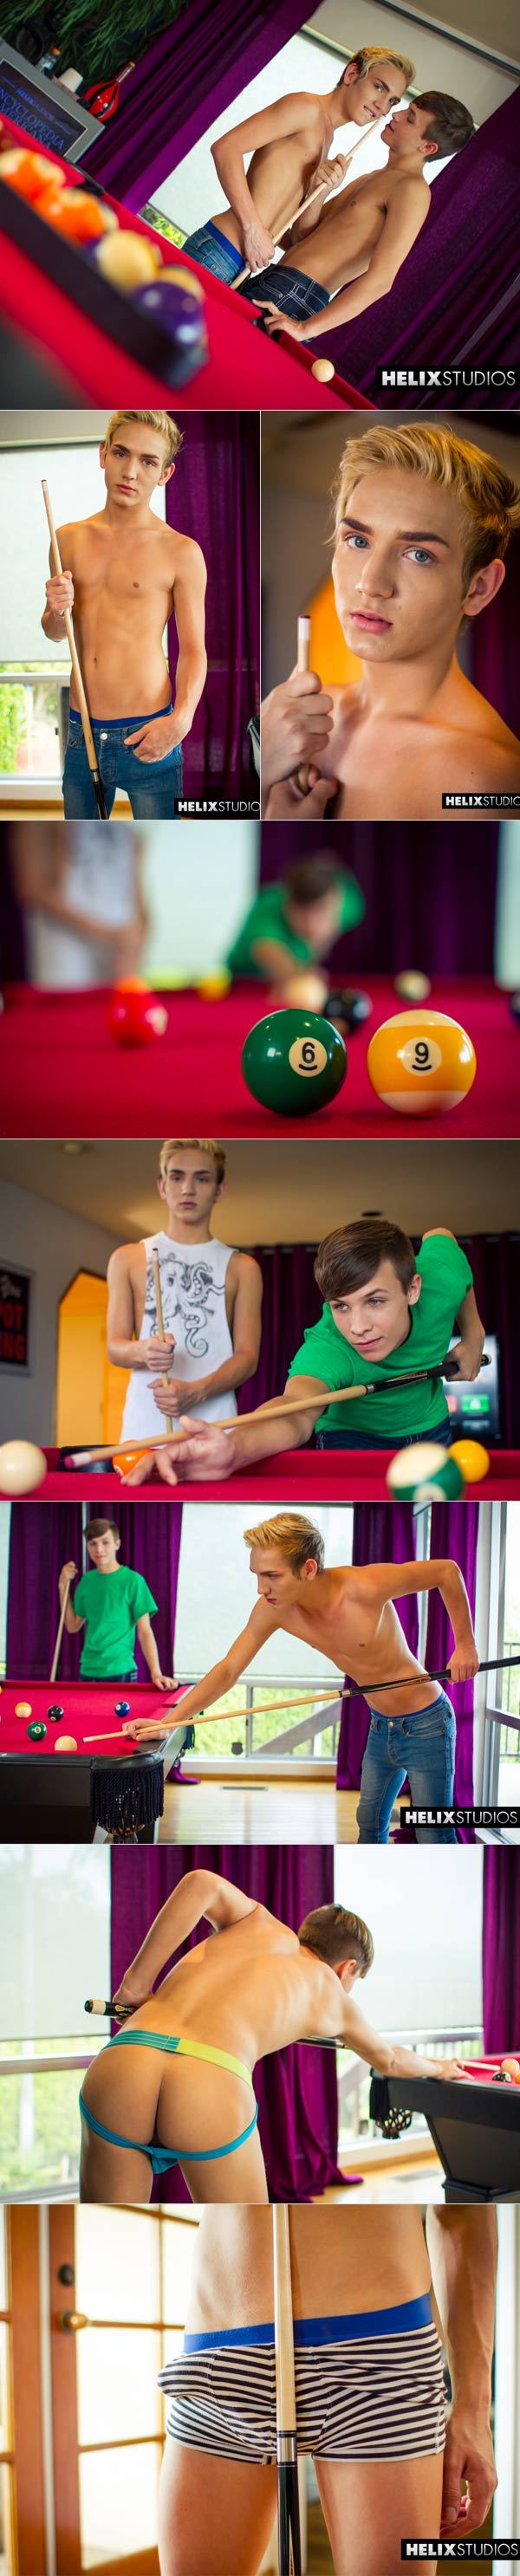 Strip Pool (Dylan Hall & Jacob Dixon) at HelixStudios